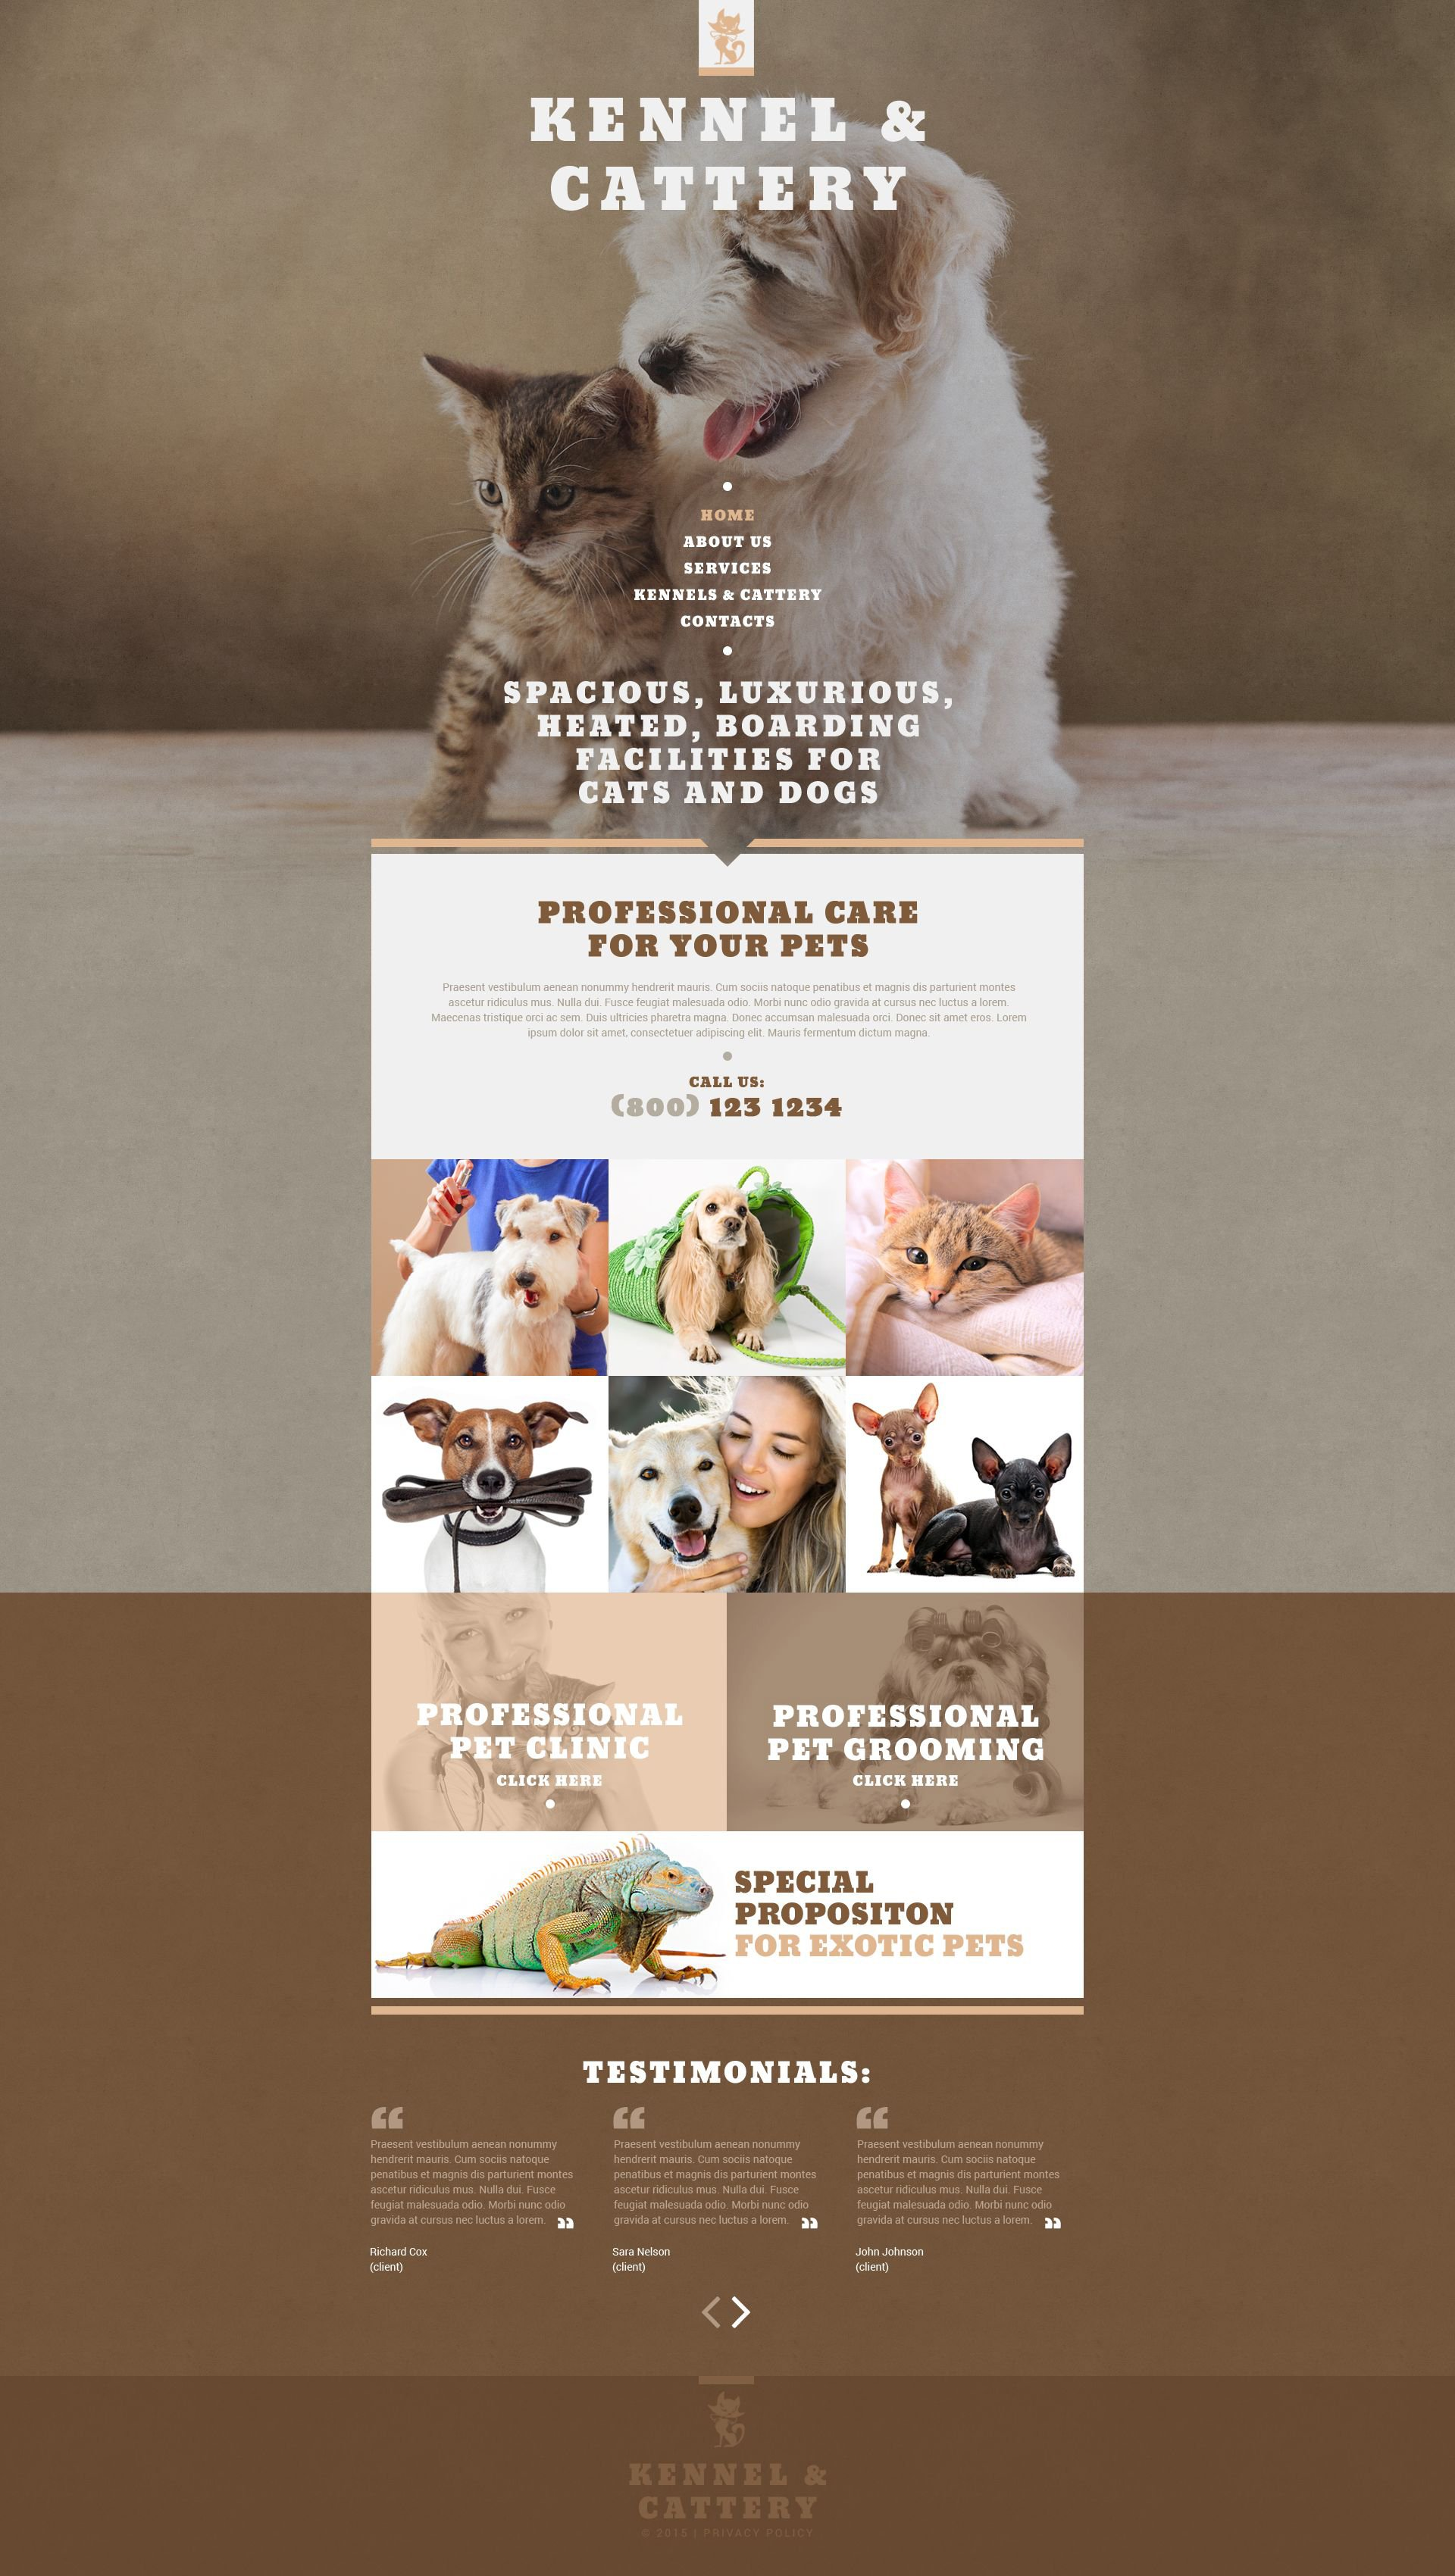 The Kennel & Cattery Cat Responsive Javascript Animated Design 53928, one of the best website templates of its kind (animals & pets, most popular), also known as Kennel & Cattery cat website template, lovers club website template, animal website template, shows website template, certificates website template, animals website template, cat website template, training website template, breeder website template, forage website template, feed website template, health website template, veterinary website template, tips website template, feed website template, breed website template, age website template, color website template, accommodation website template, apparel website template, bed website template, dishes website template, bowl website template, cleanup website template, collar website template, flea website template, tick website template, grooming and related with Kennel & Cattery cat, lovers club, animal, shows, certificates, animals, cat, training, breeder, forage, feed, health, veterinary, tips, feed, breed, age, color, accommodation, apparel, bed, dishes, bowl, cleanup, collar, flea, tick, grooming, etc.